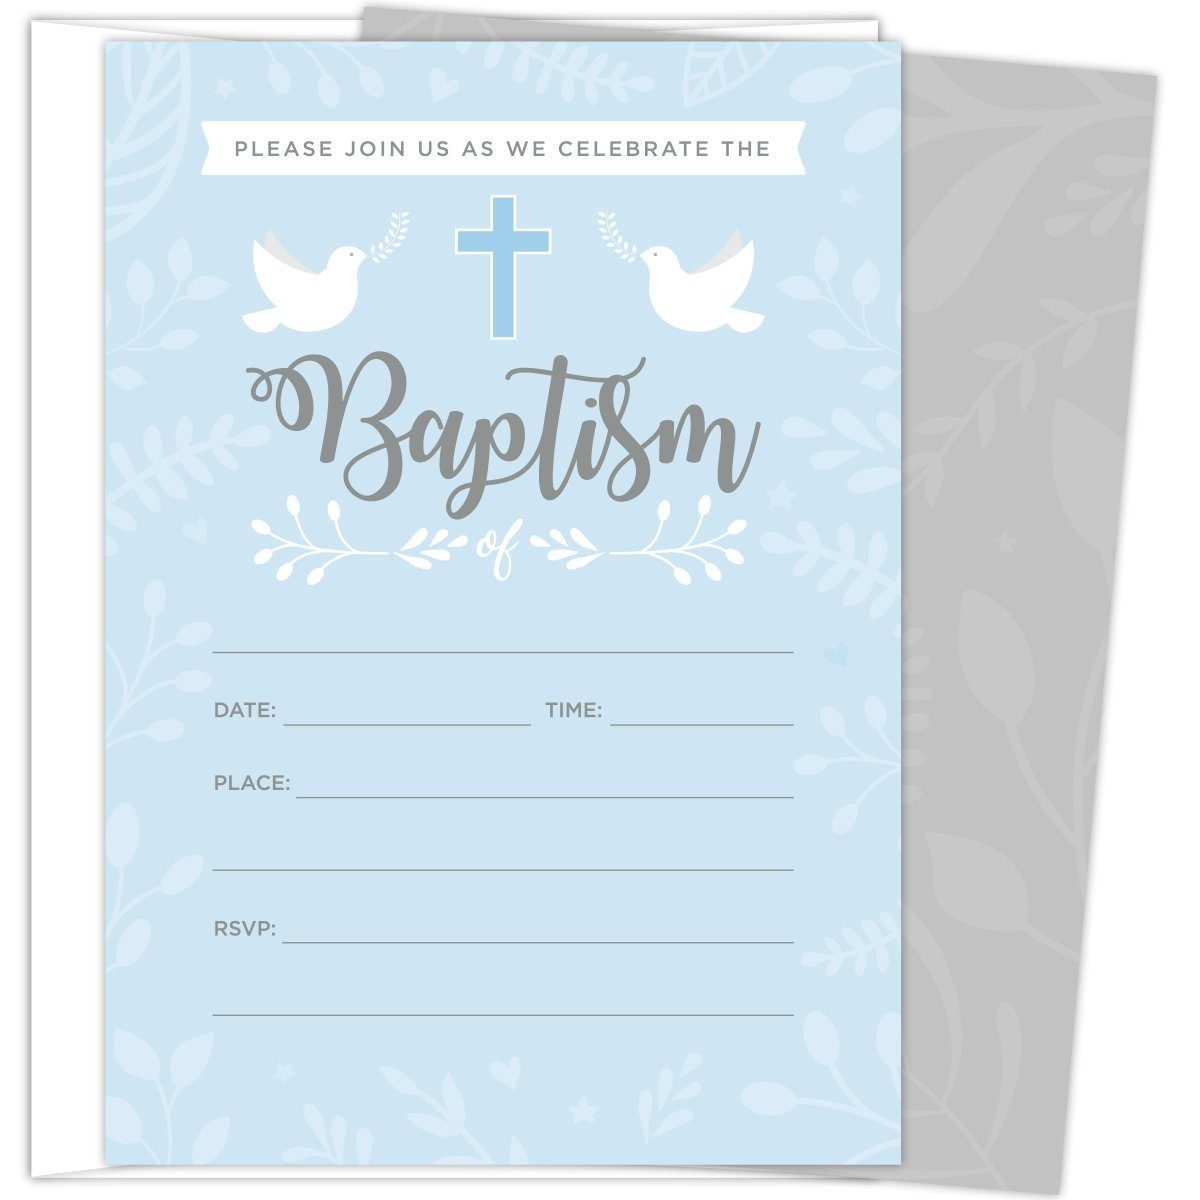 Baptism Invitations for Baby Boys, 25 Fill In The Blank Style Cards and Envelopes. by Koko Paper Co (Image #1)